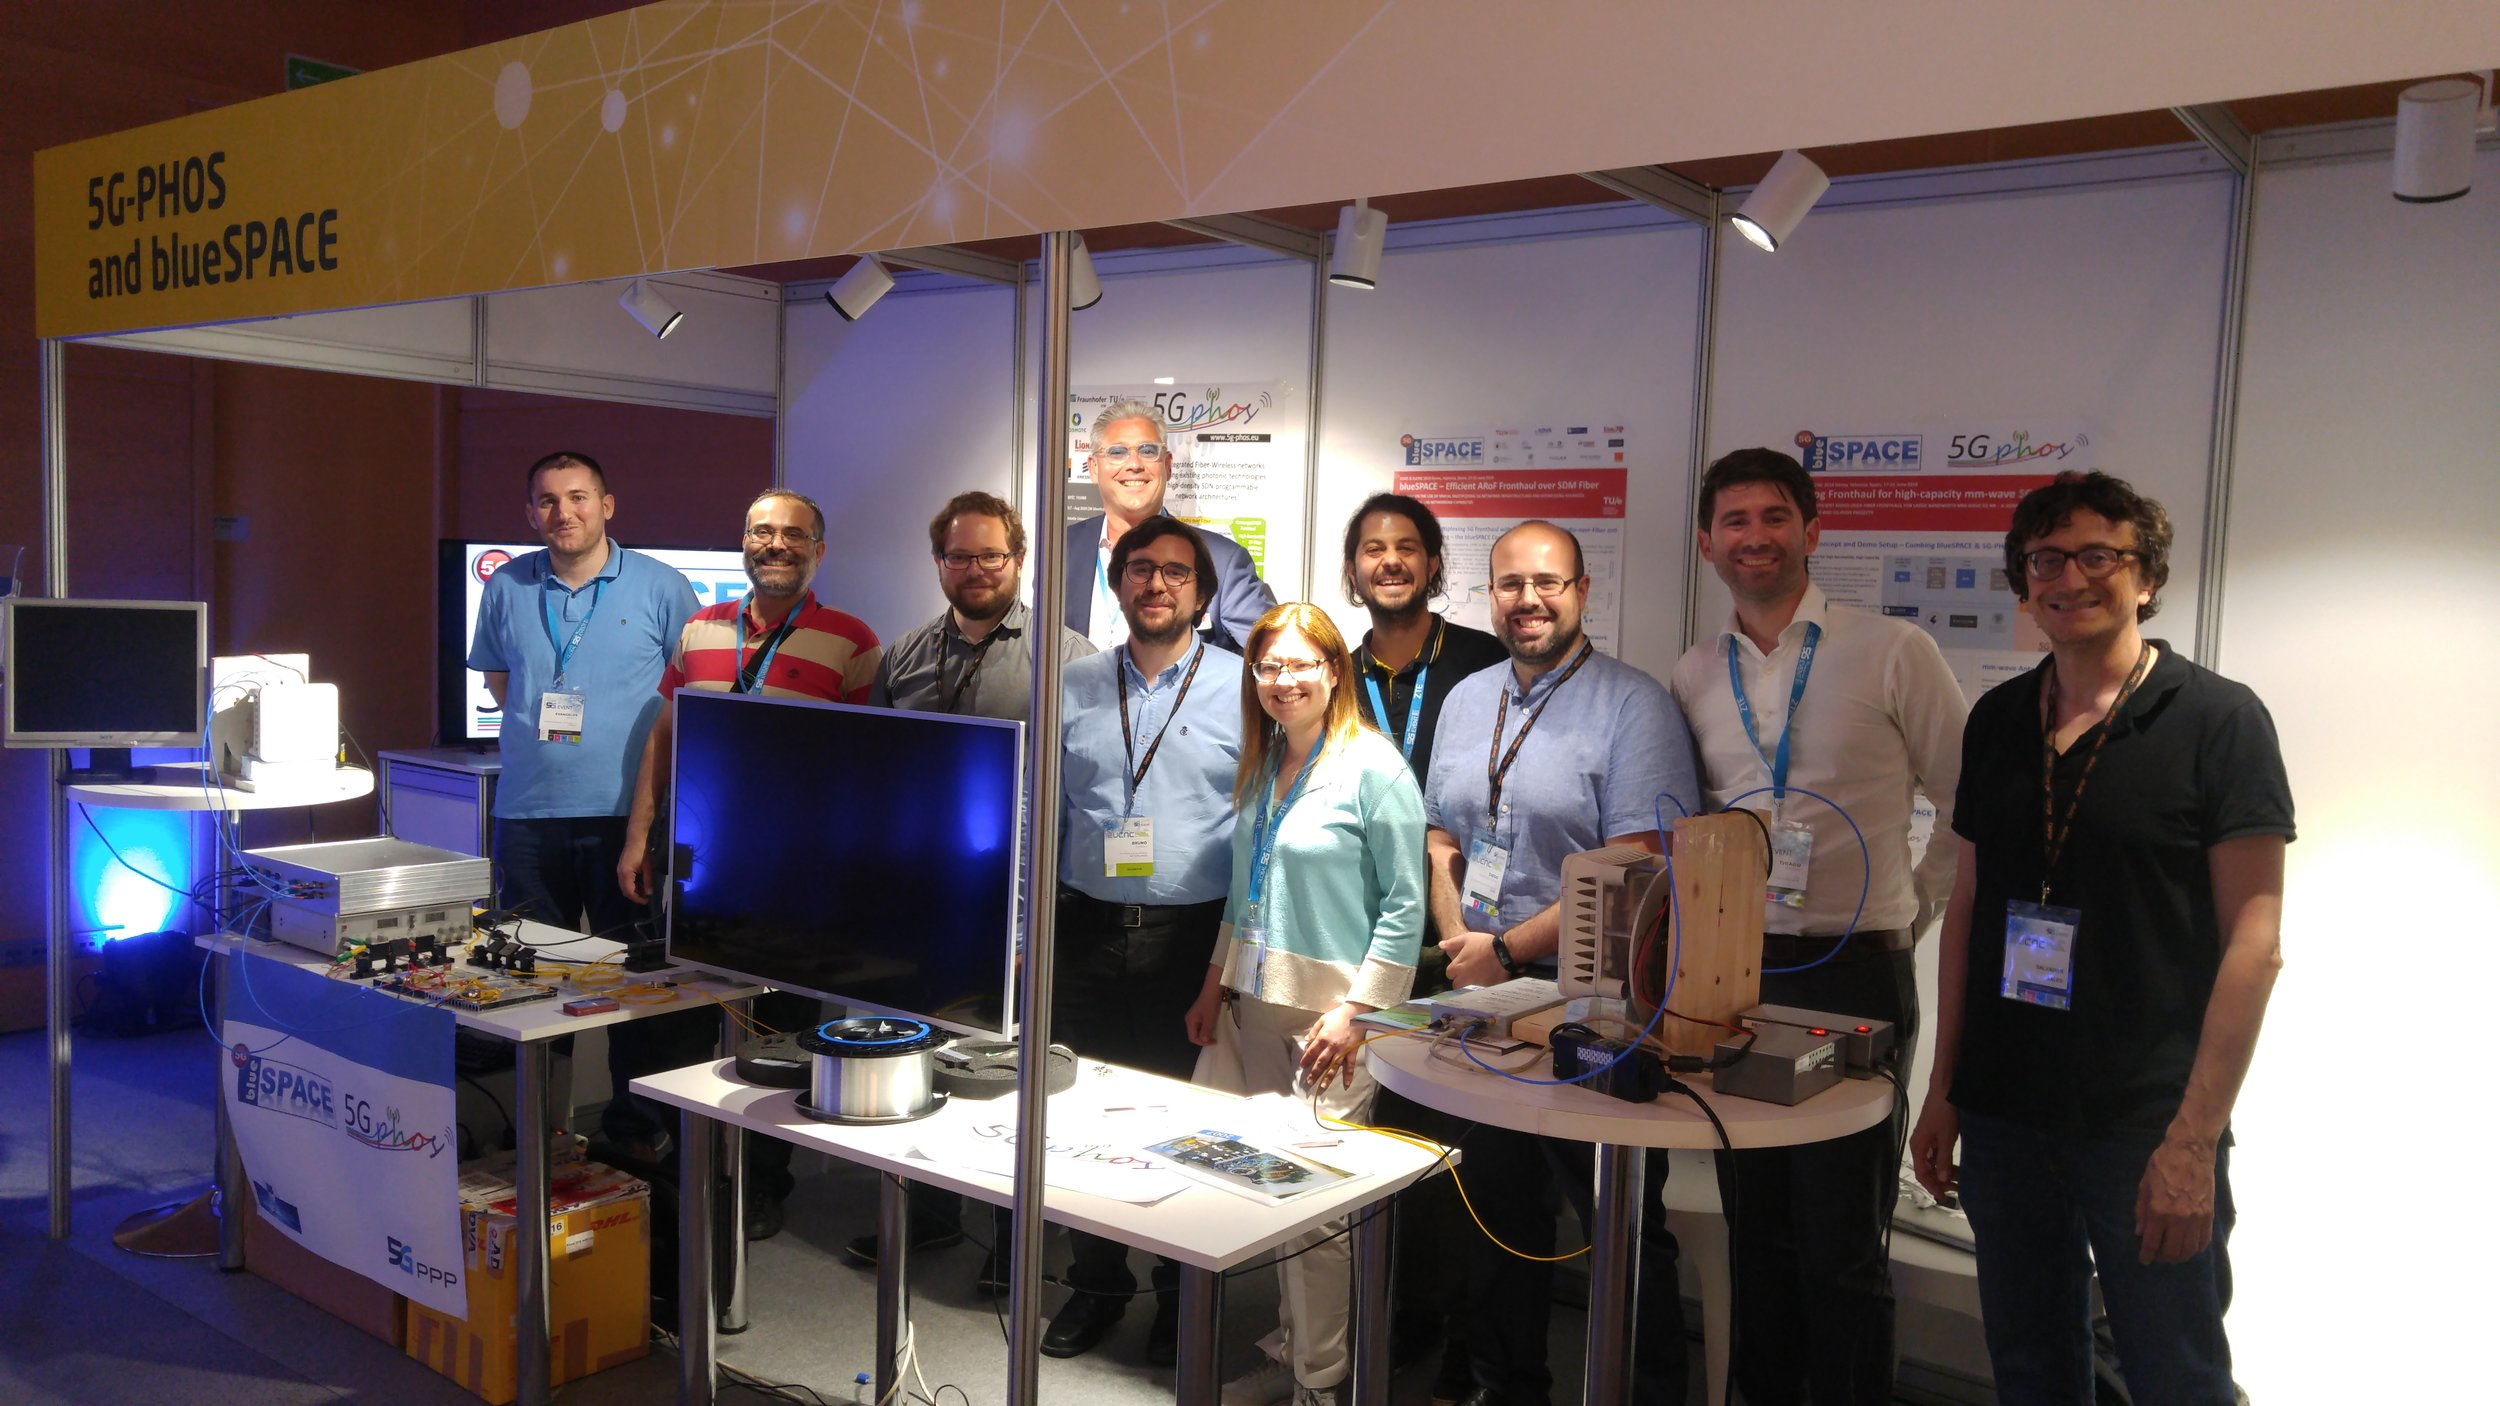 Demo booth with visiting consortium members from both projects.